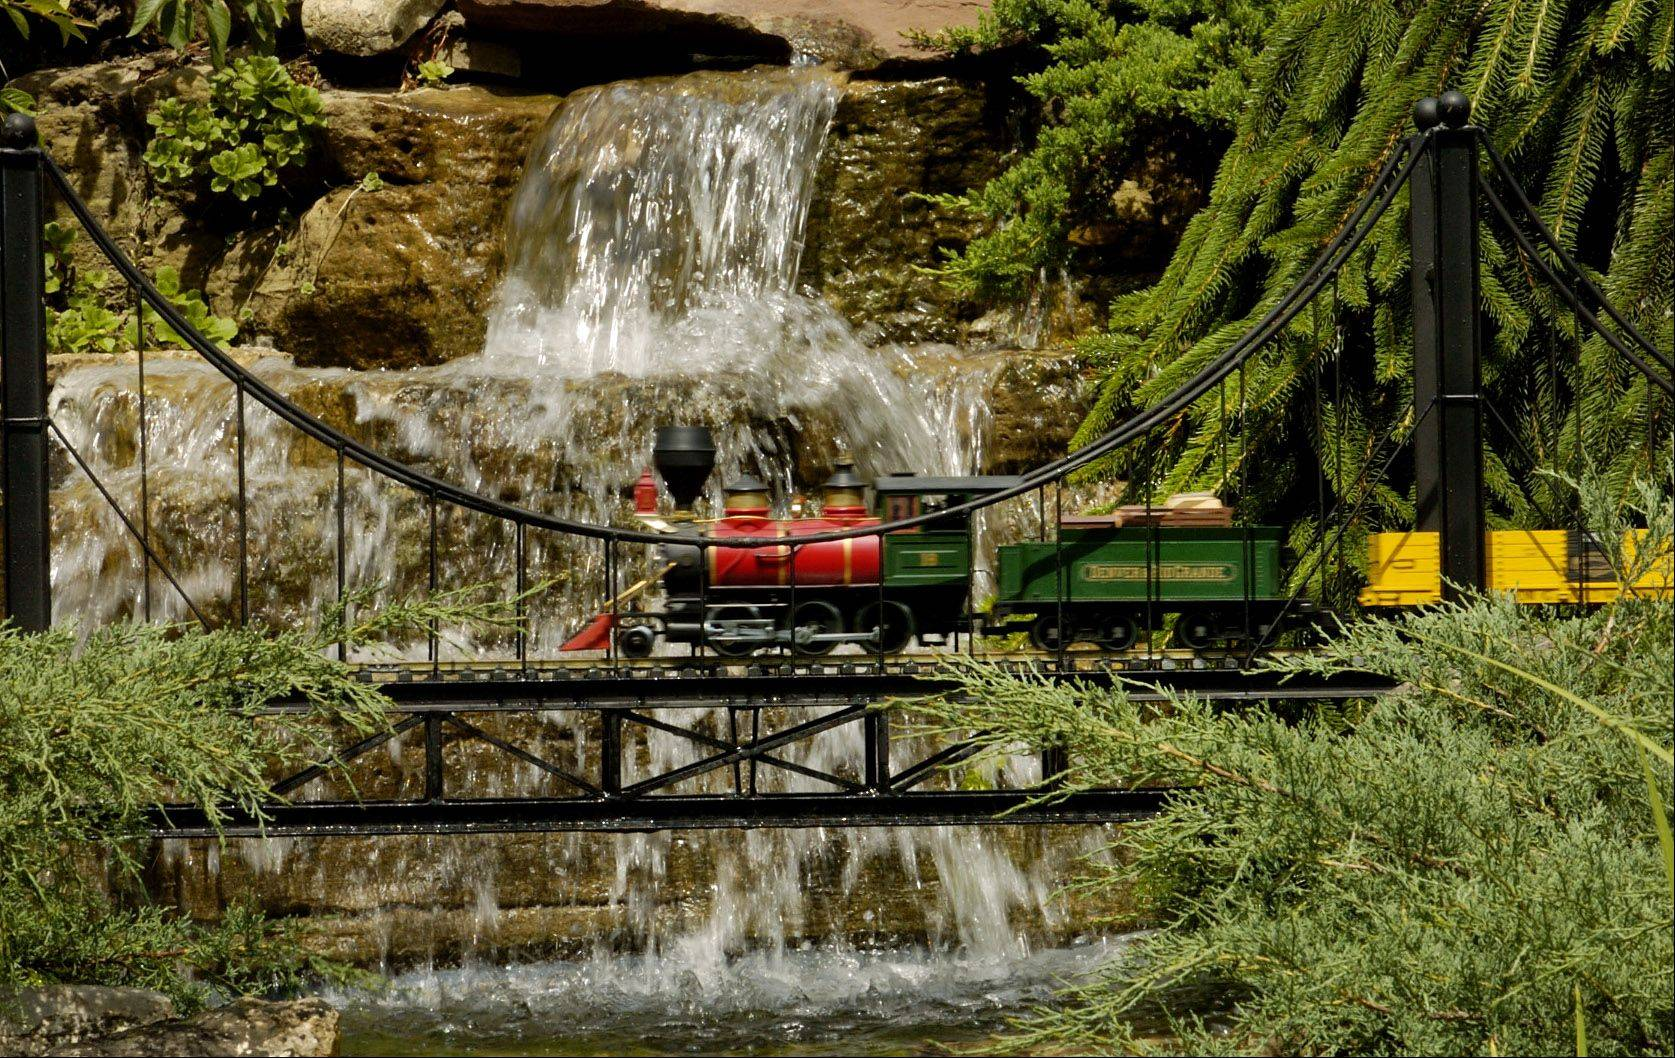 Train Lady Elaine Silets's Japanese Garden Railway which will be open to the public June 23.